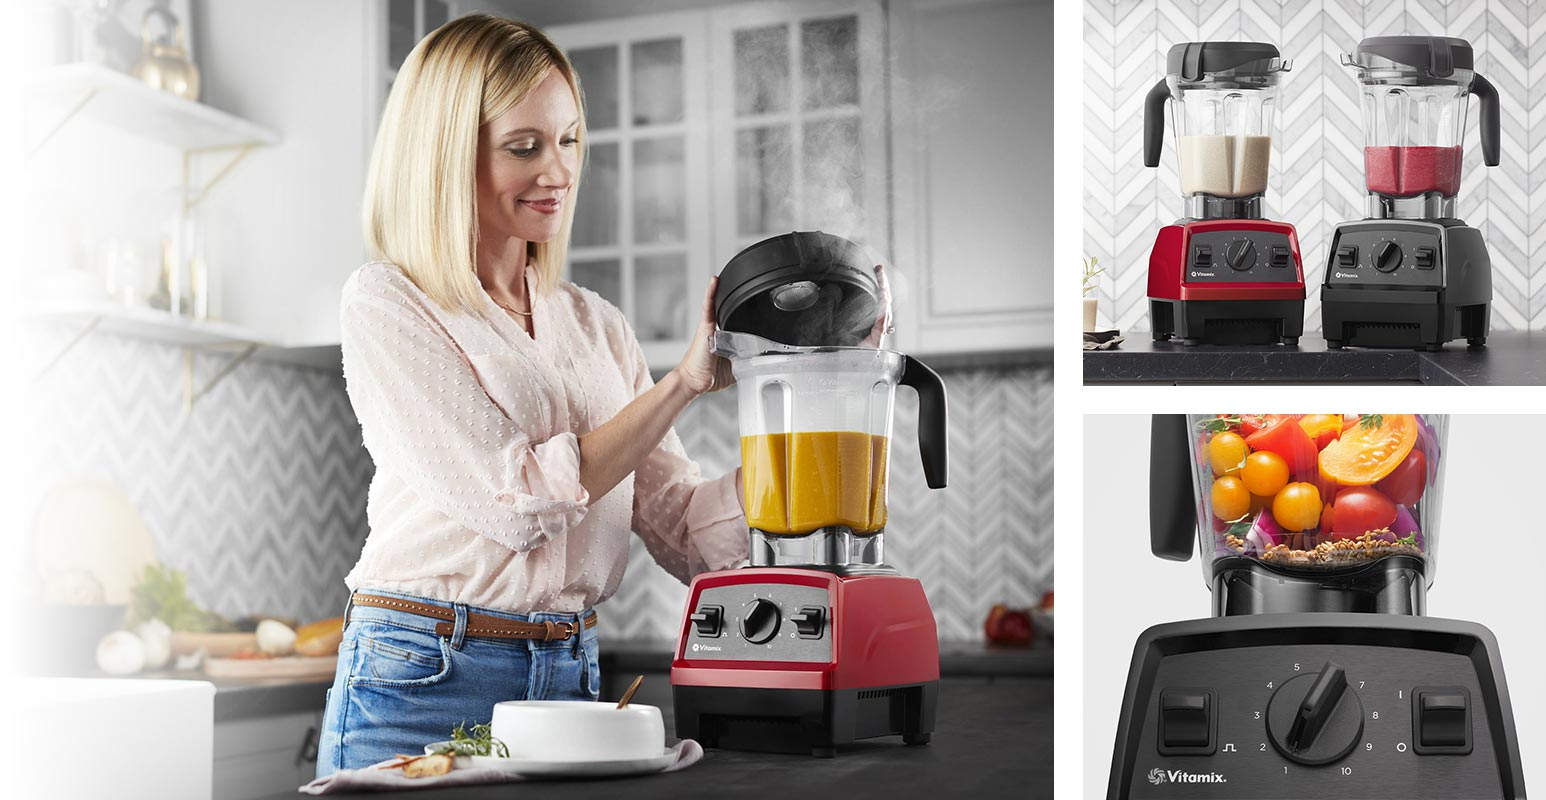 This blender is $70 off at  Costco  now until May 12th.